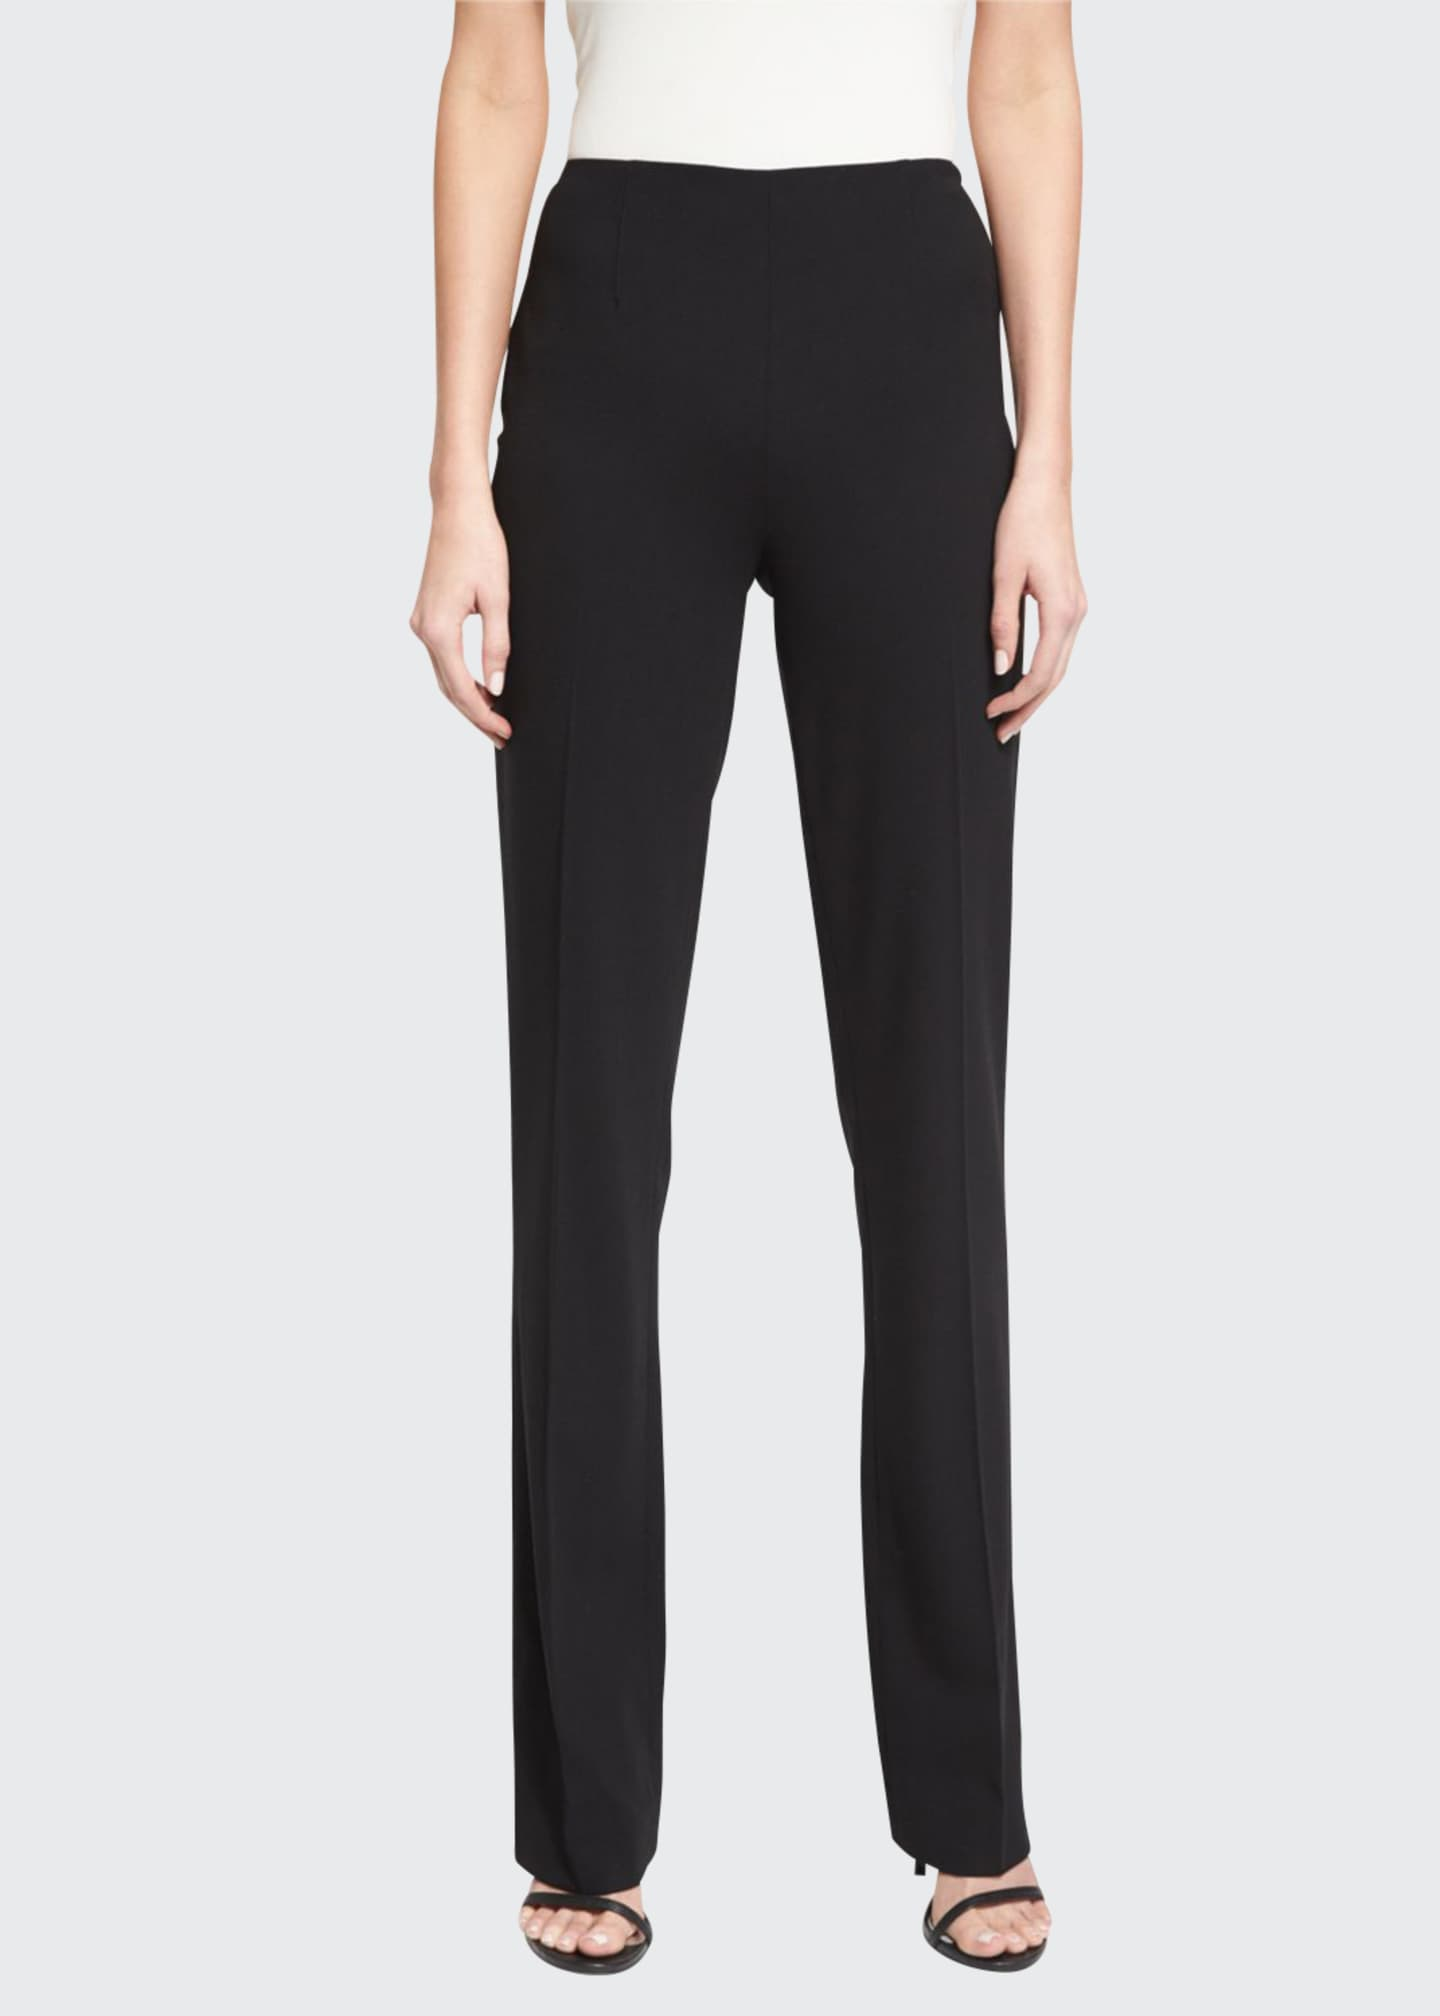 Image 1 of 3: Alandra Side-Zip Stretch-Wool Pants, Black